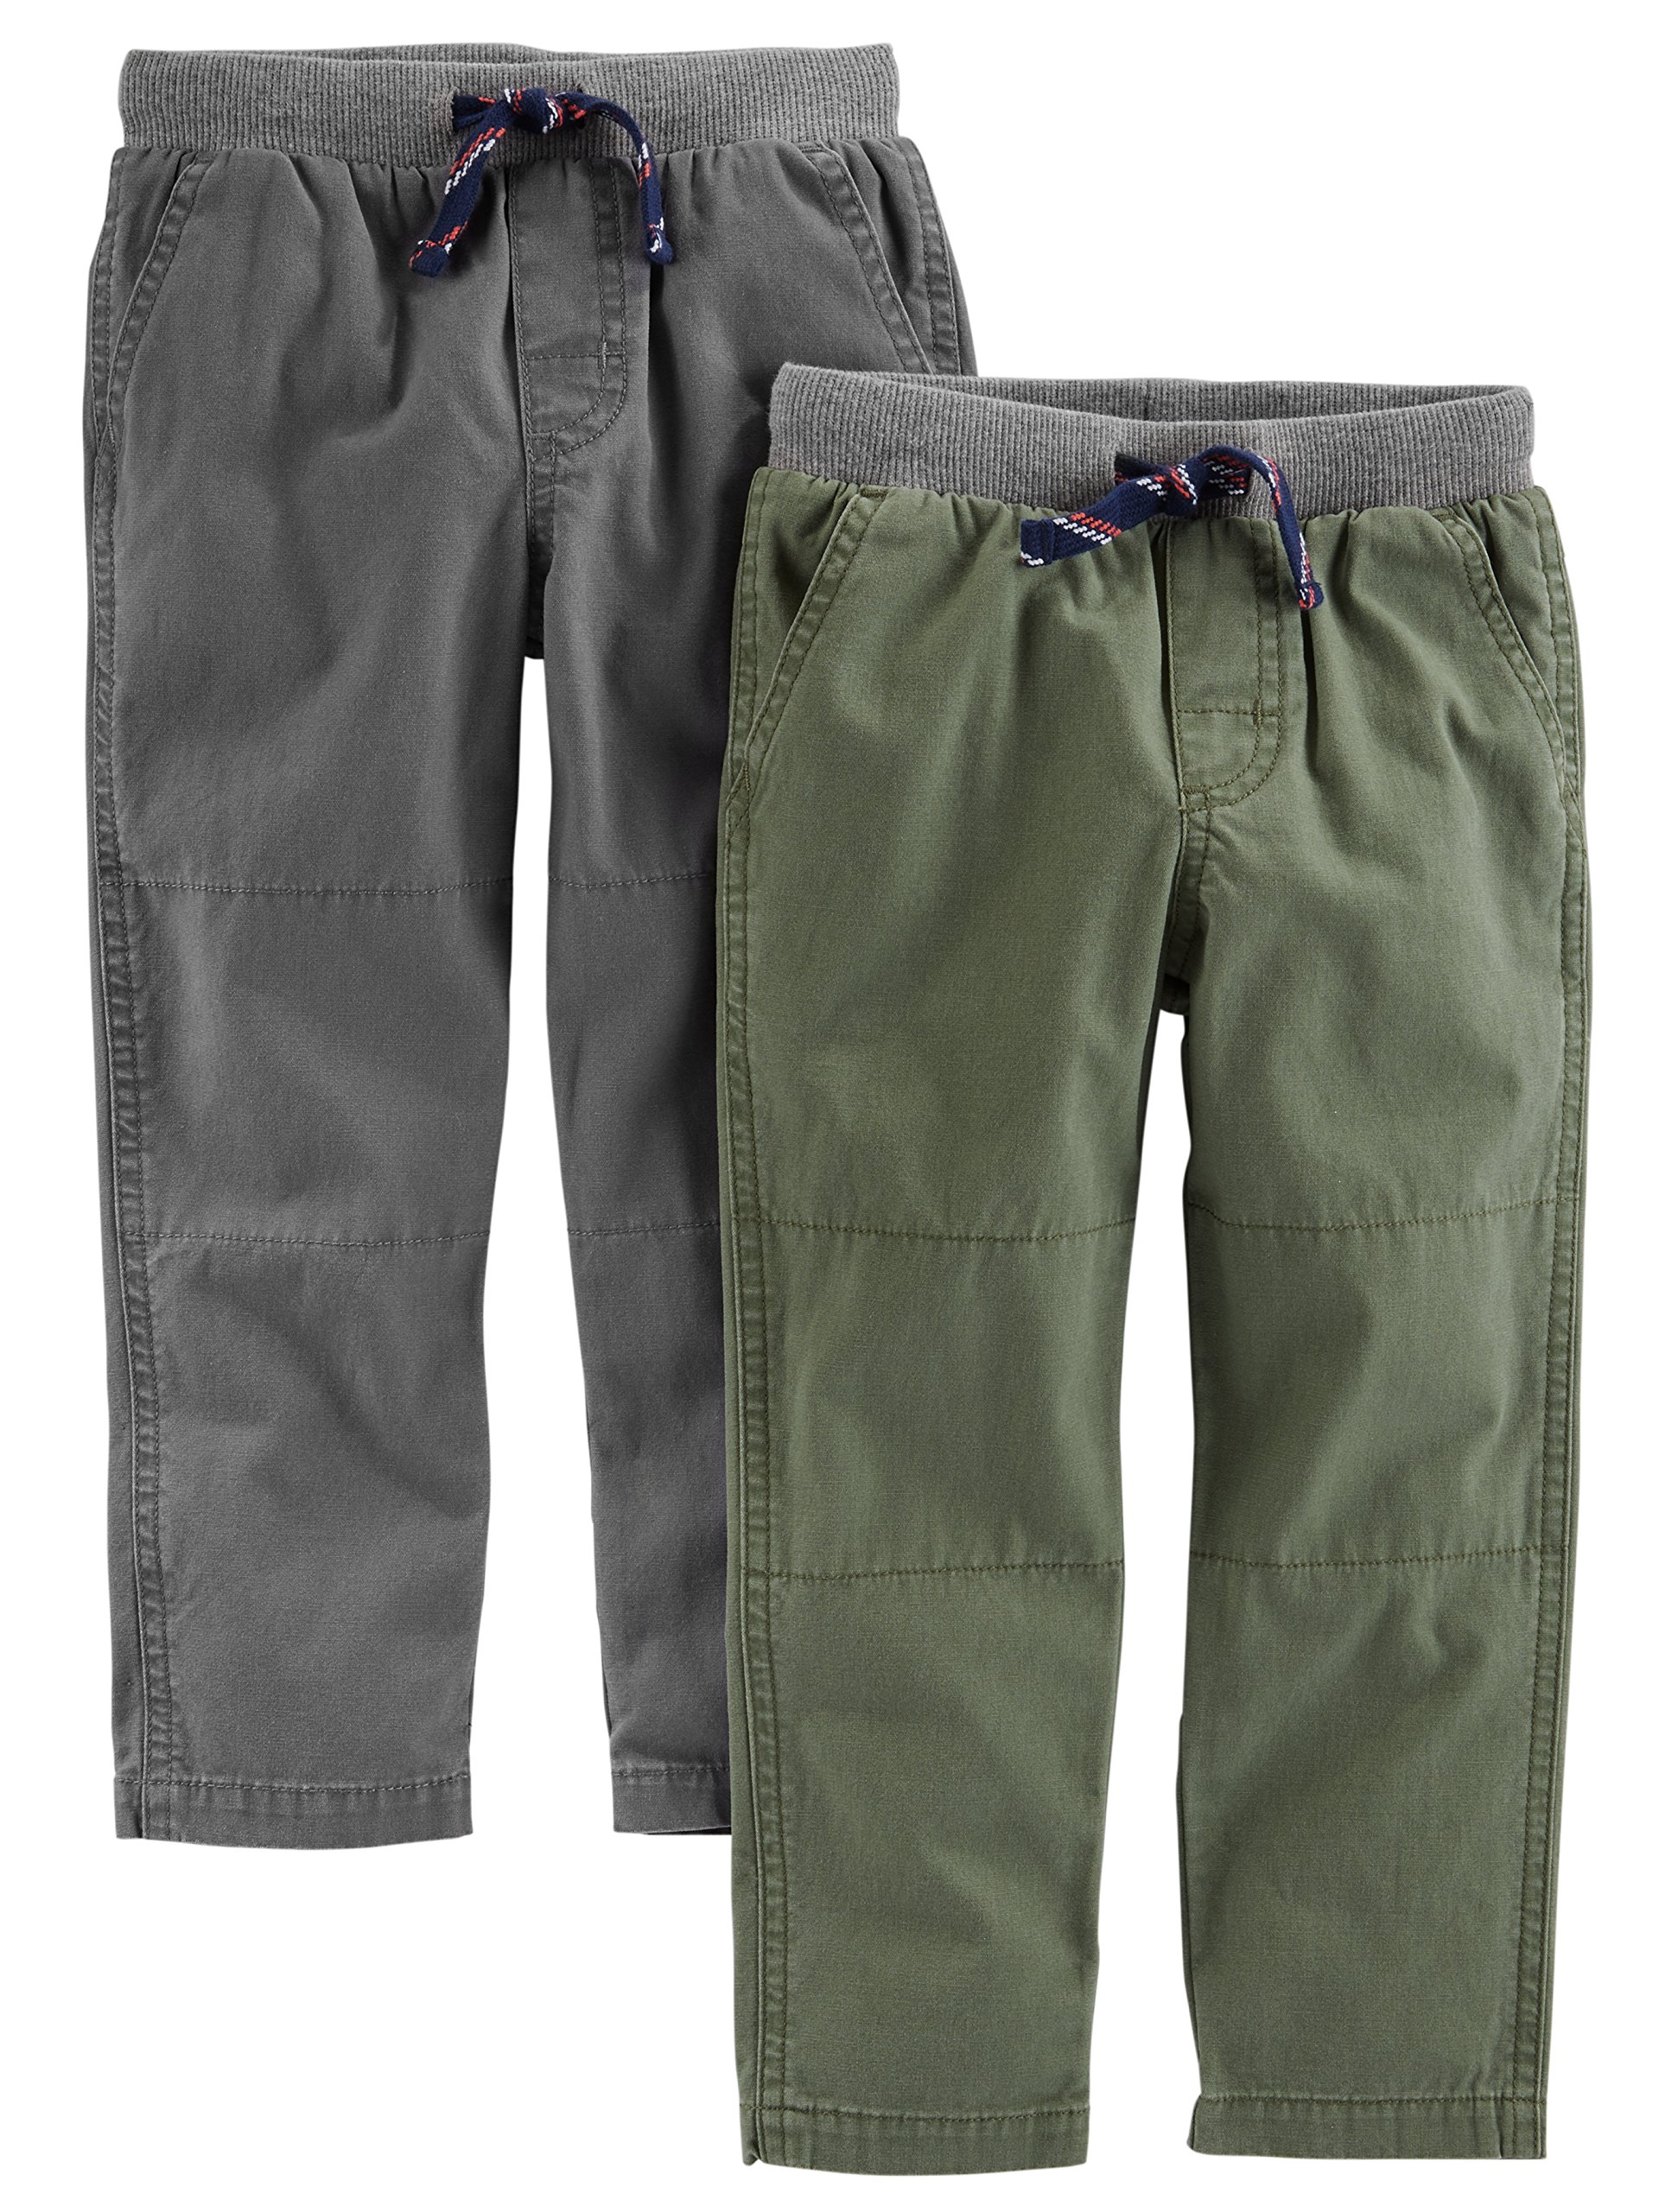 Simple Joys by Carter's Baby Boys' Toddler 2-Pack Pull on Pant, Green, Gray, 3T by Simple Joys by Carter's